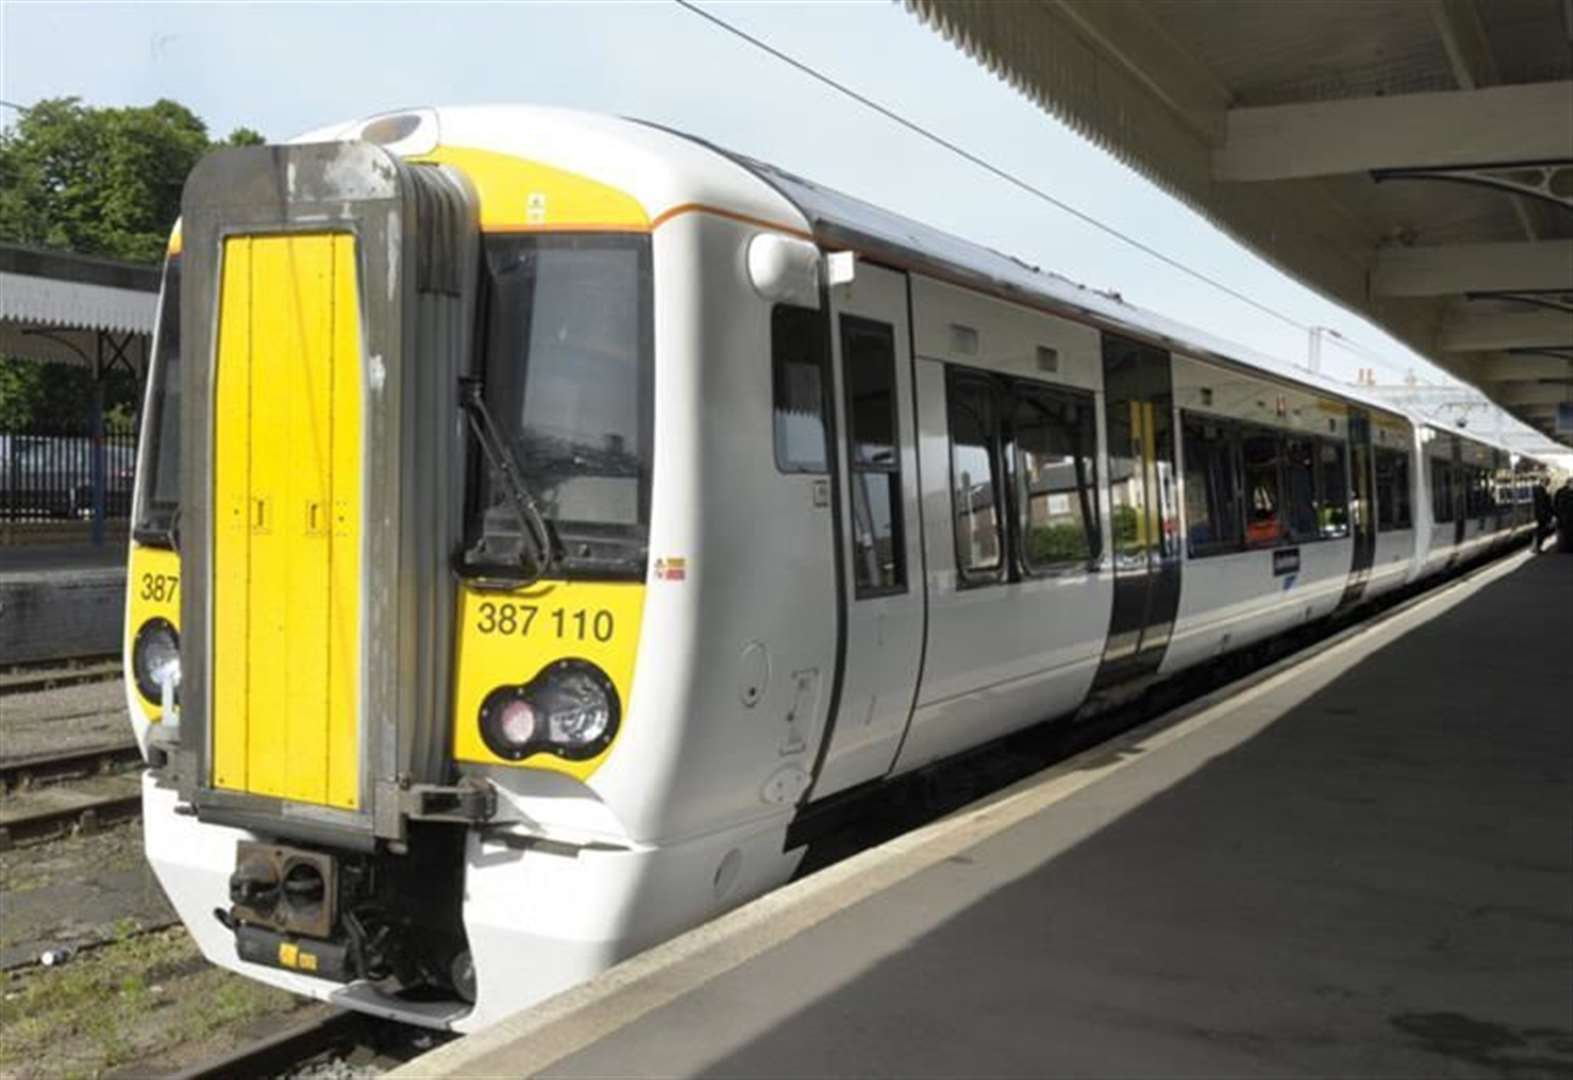 Disruption to train services in West Norfolk